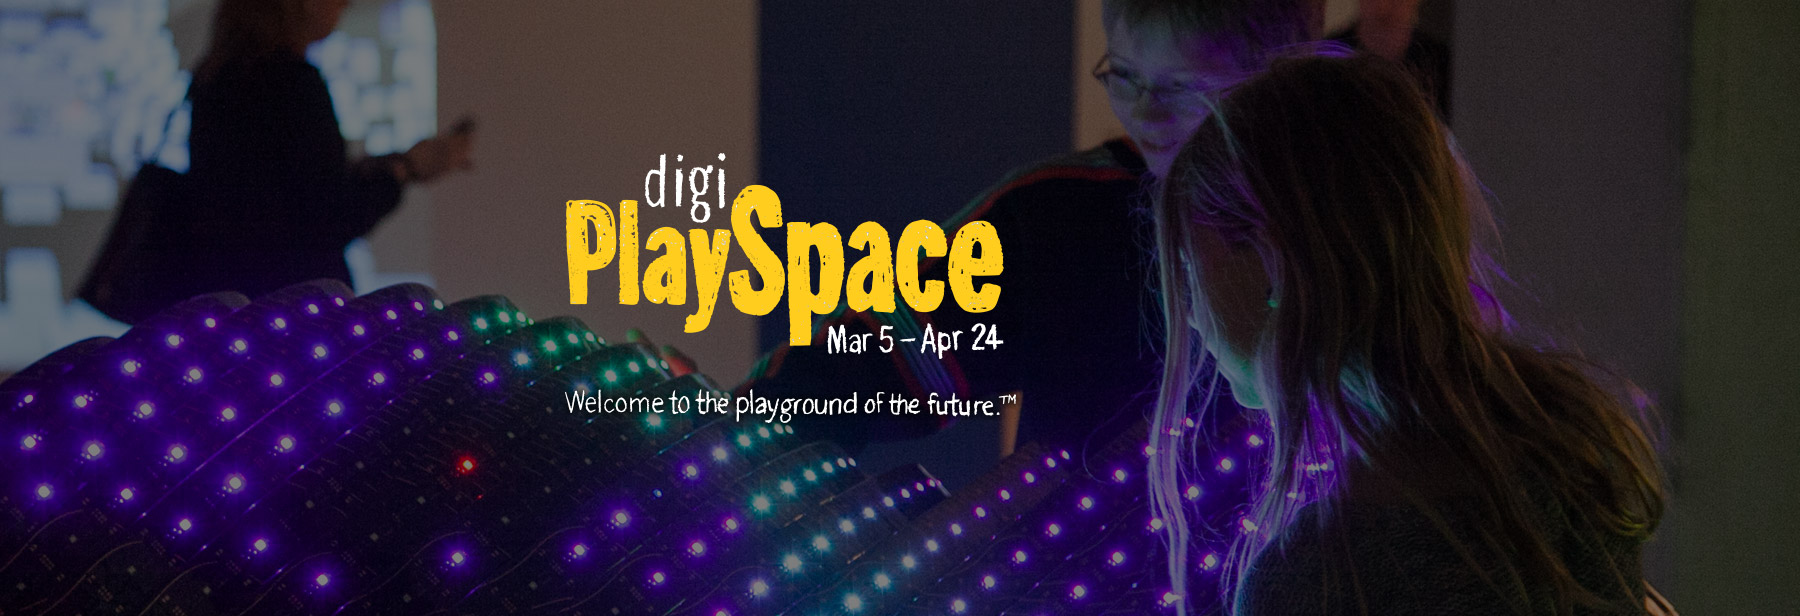 digiPlaySpace